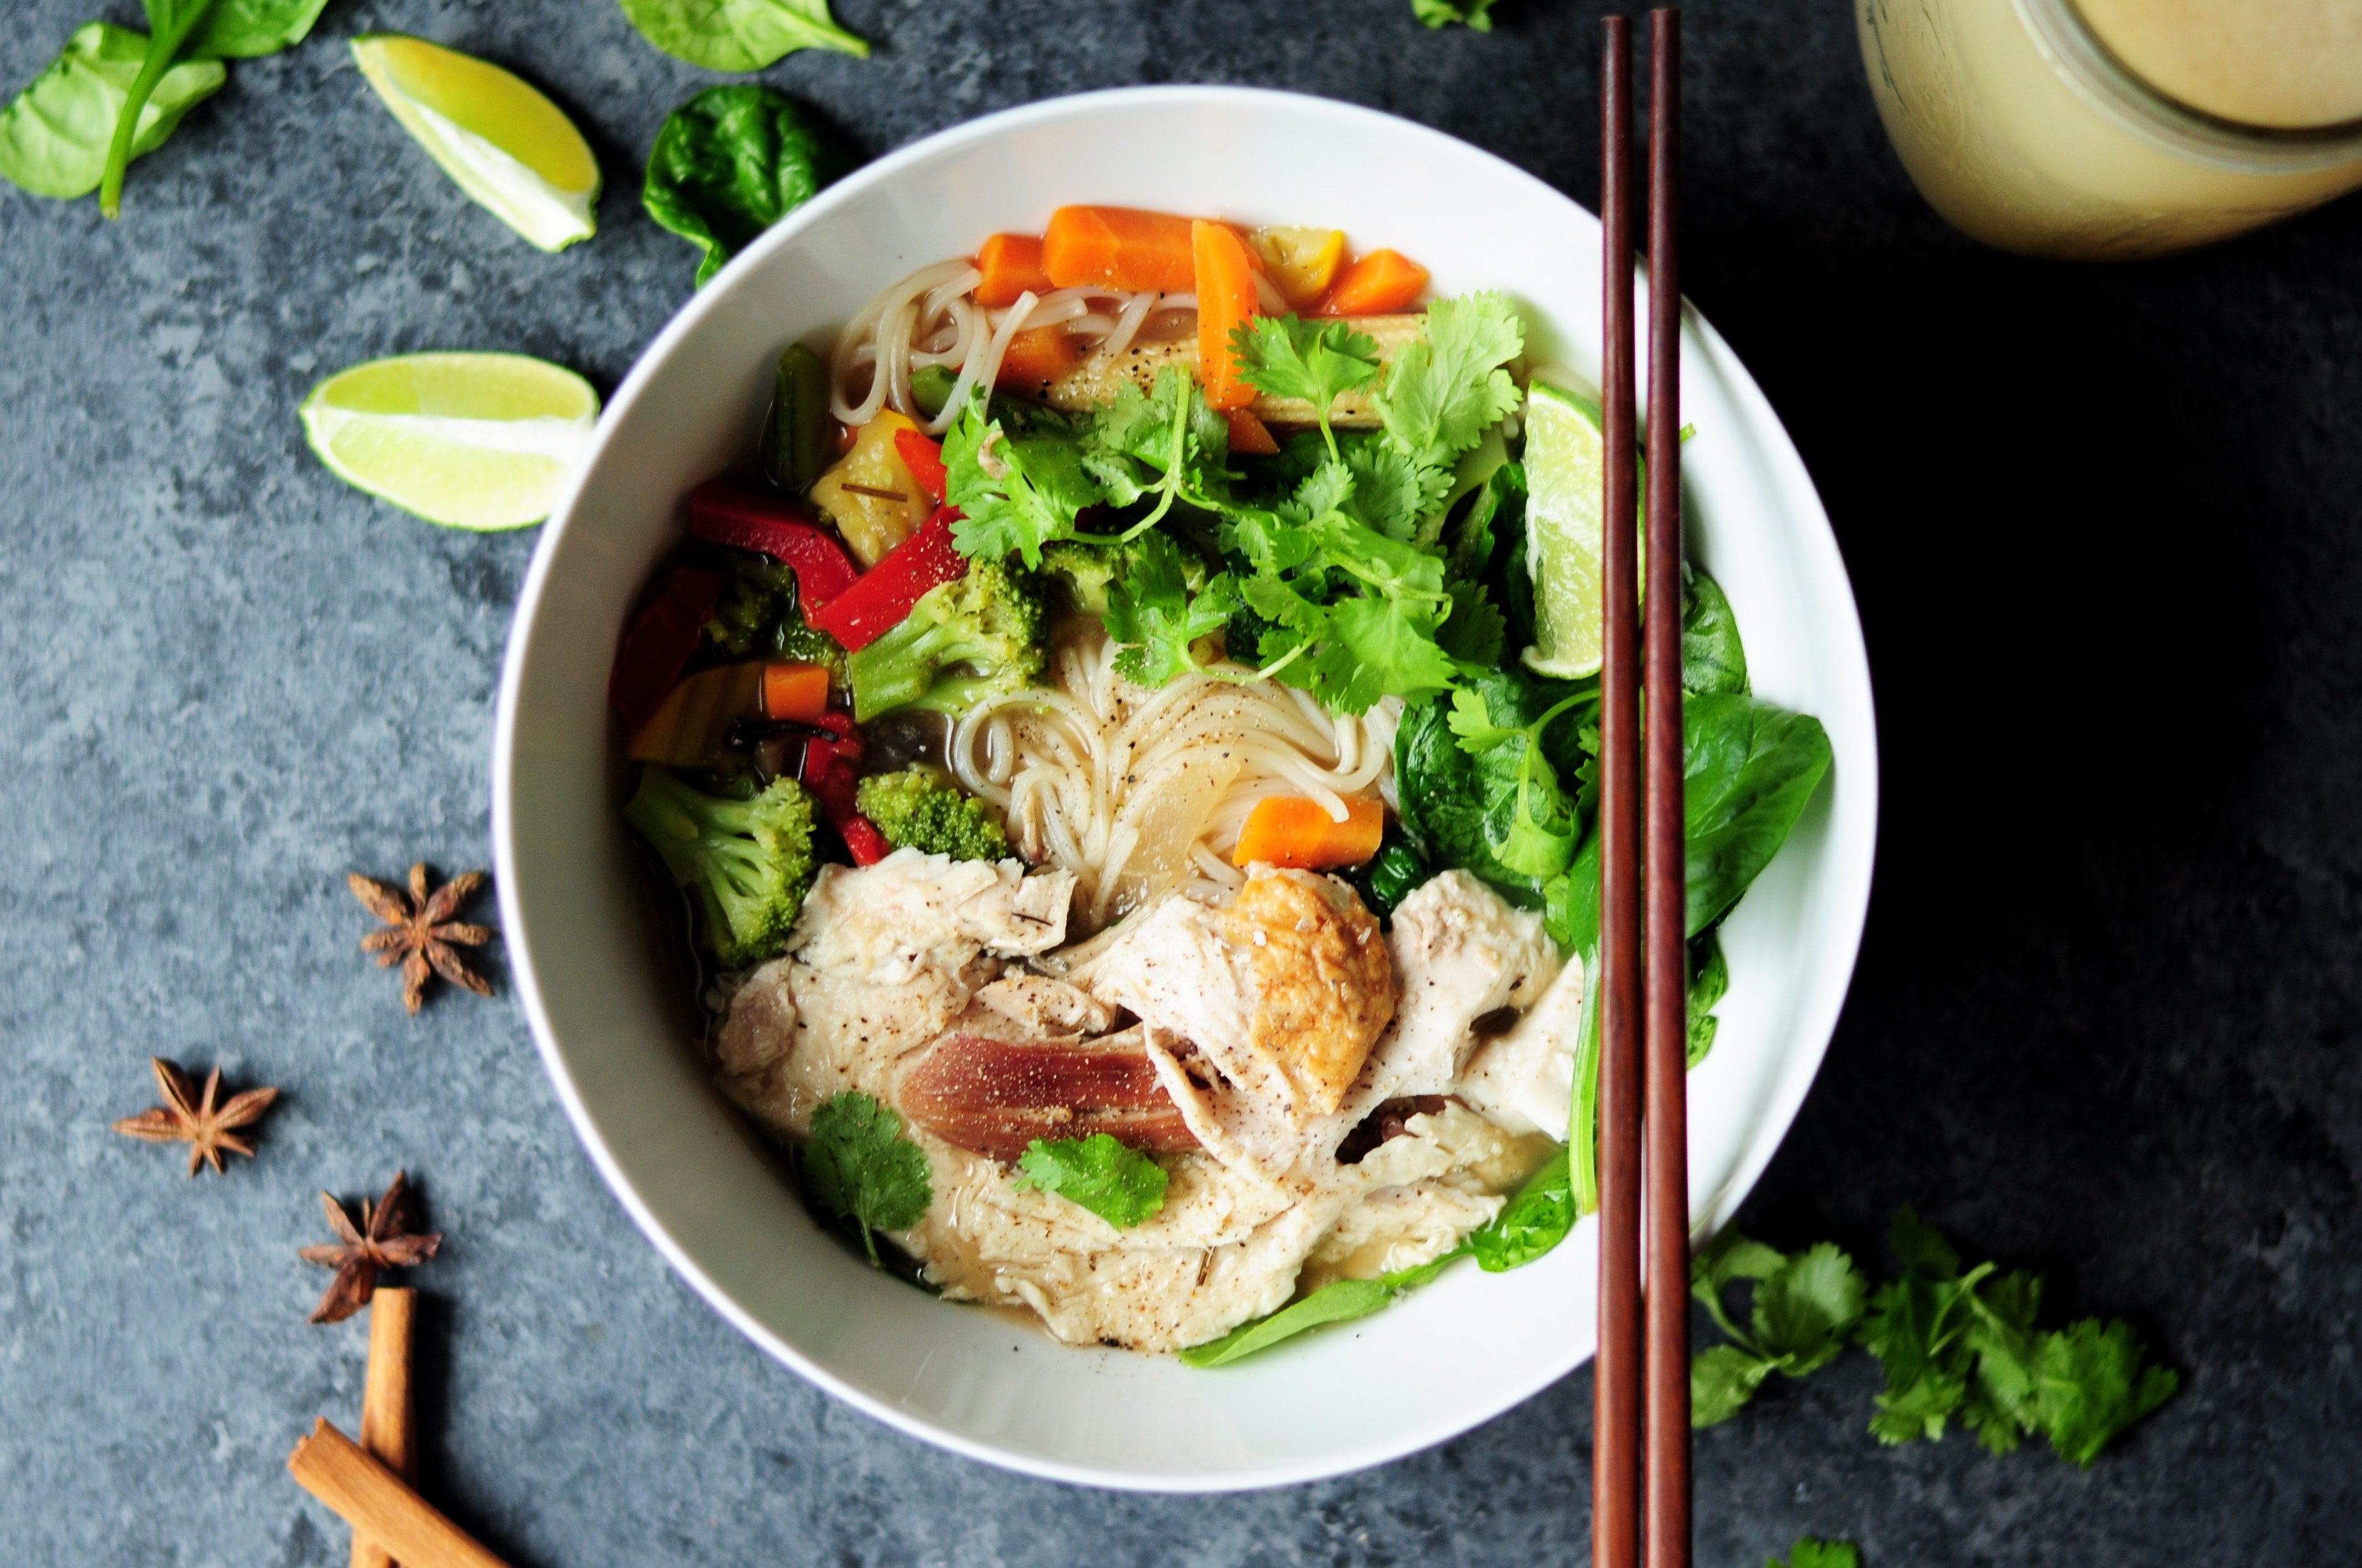 A delicious vietnamese dish with fish and noodles in a bowl